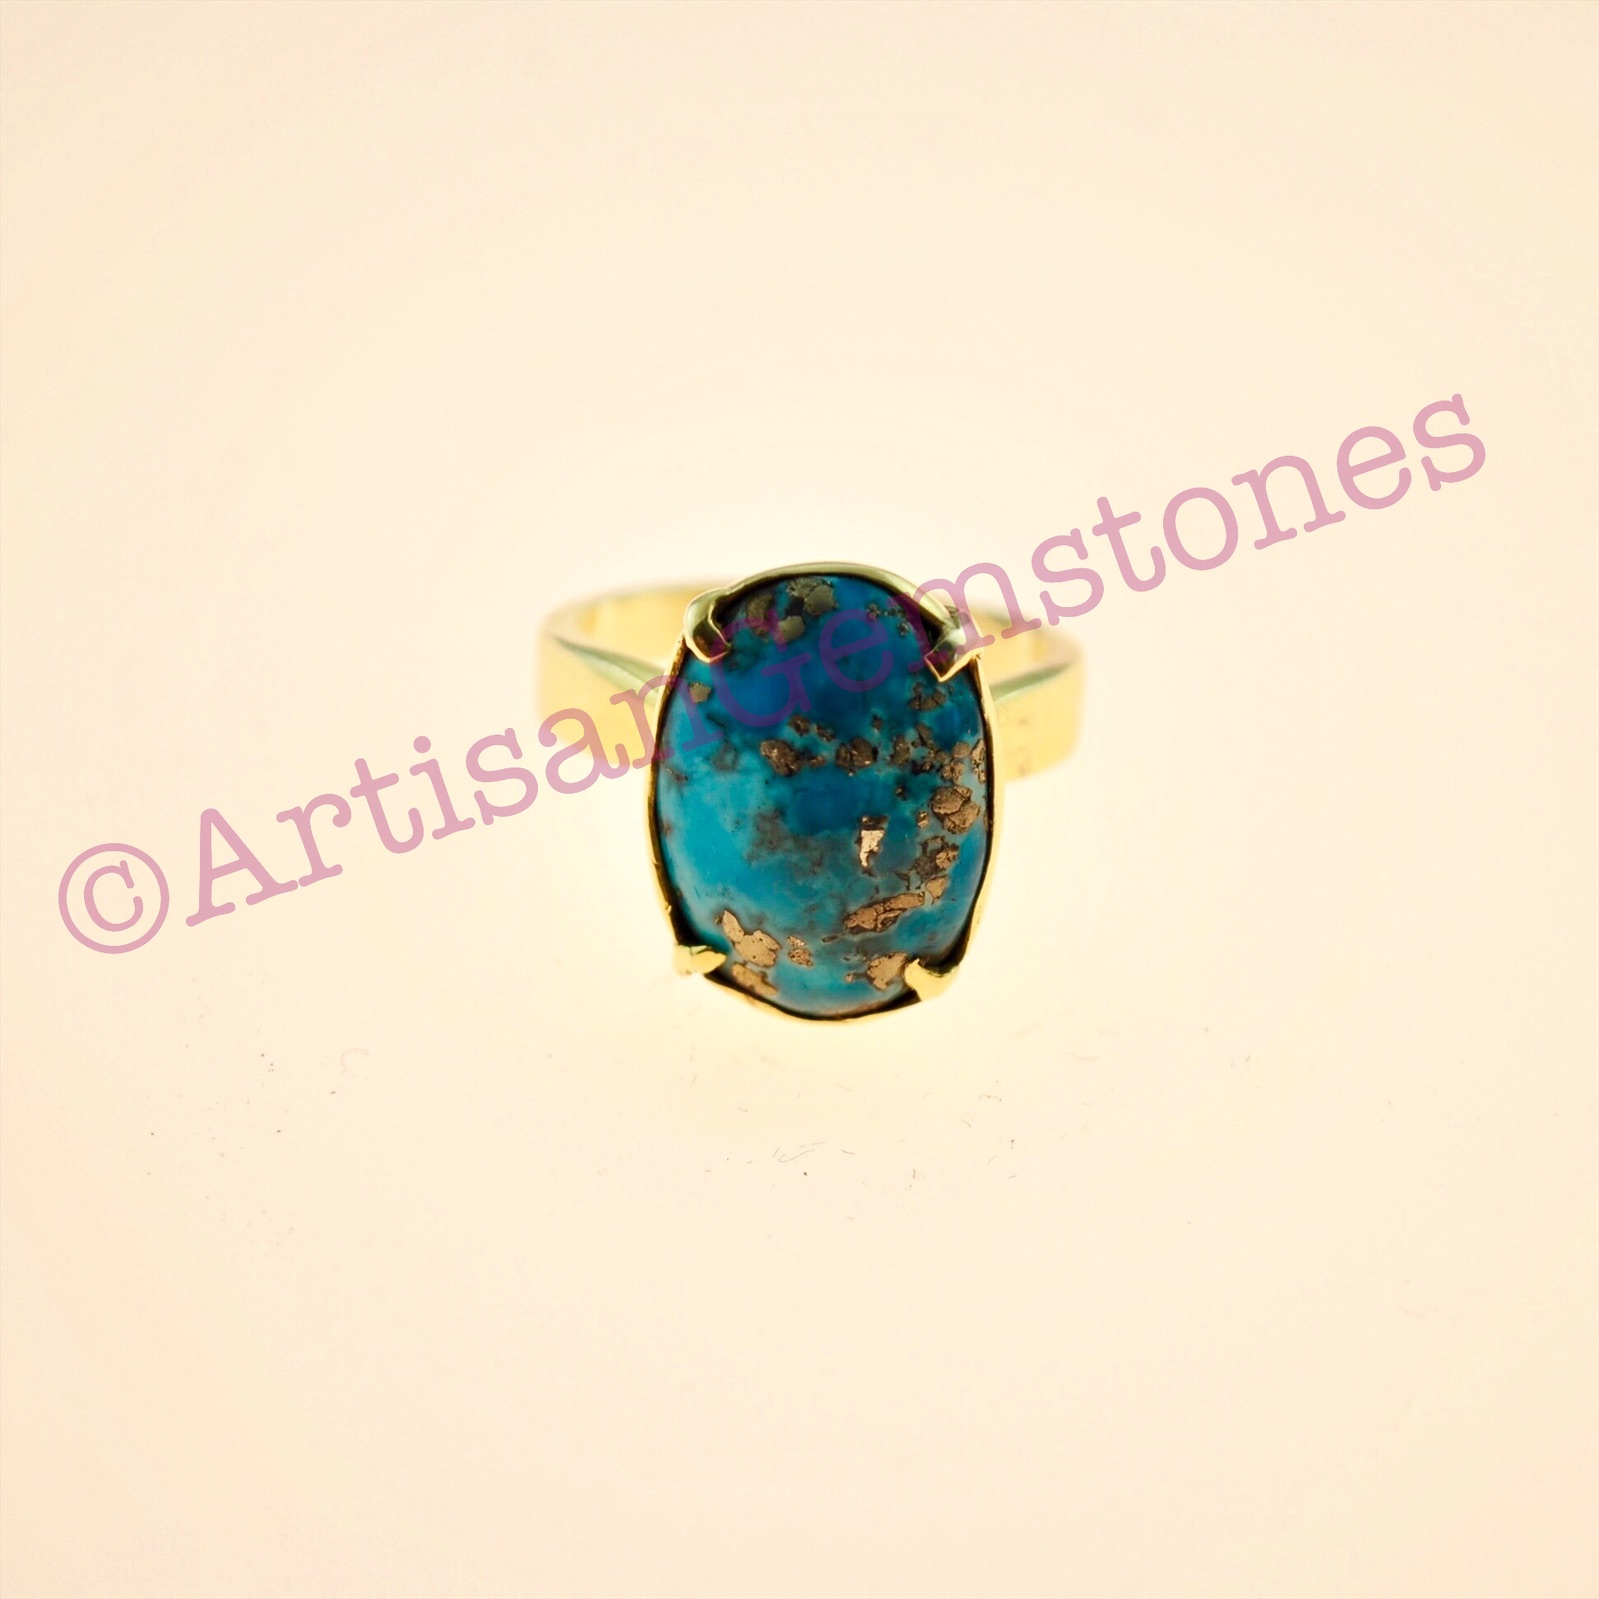 Oval, Turquoise/Ferzoza Iranian 925 silver 22k Gold plated adjustable ring